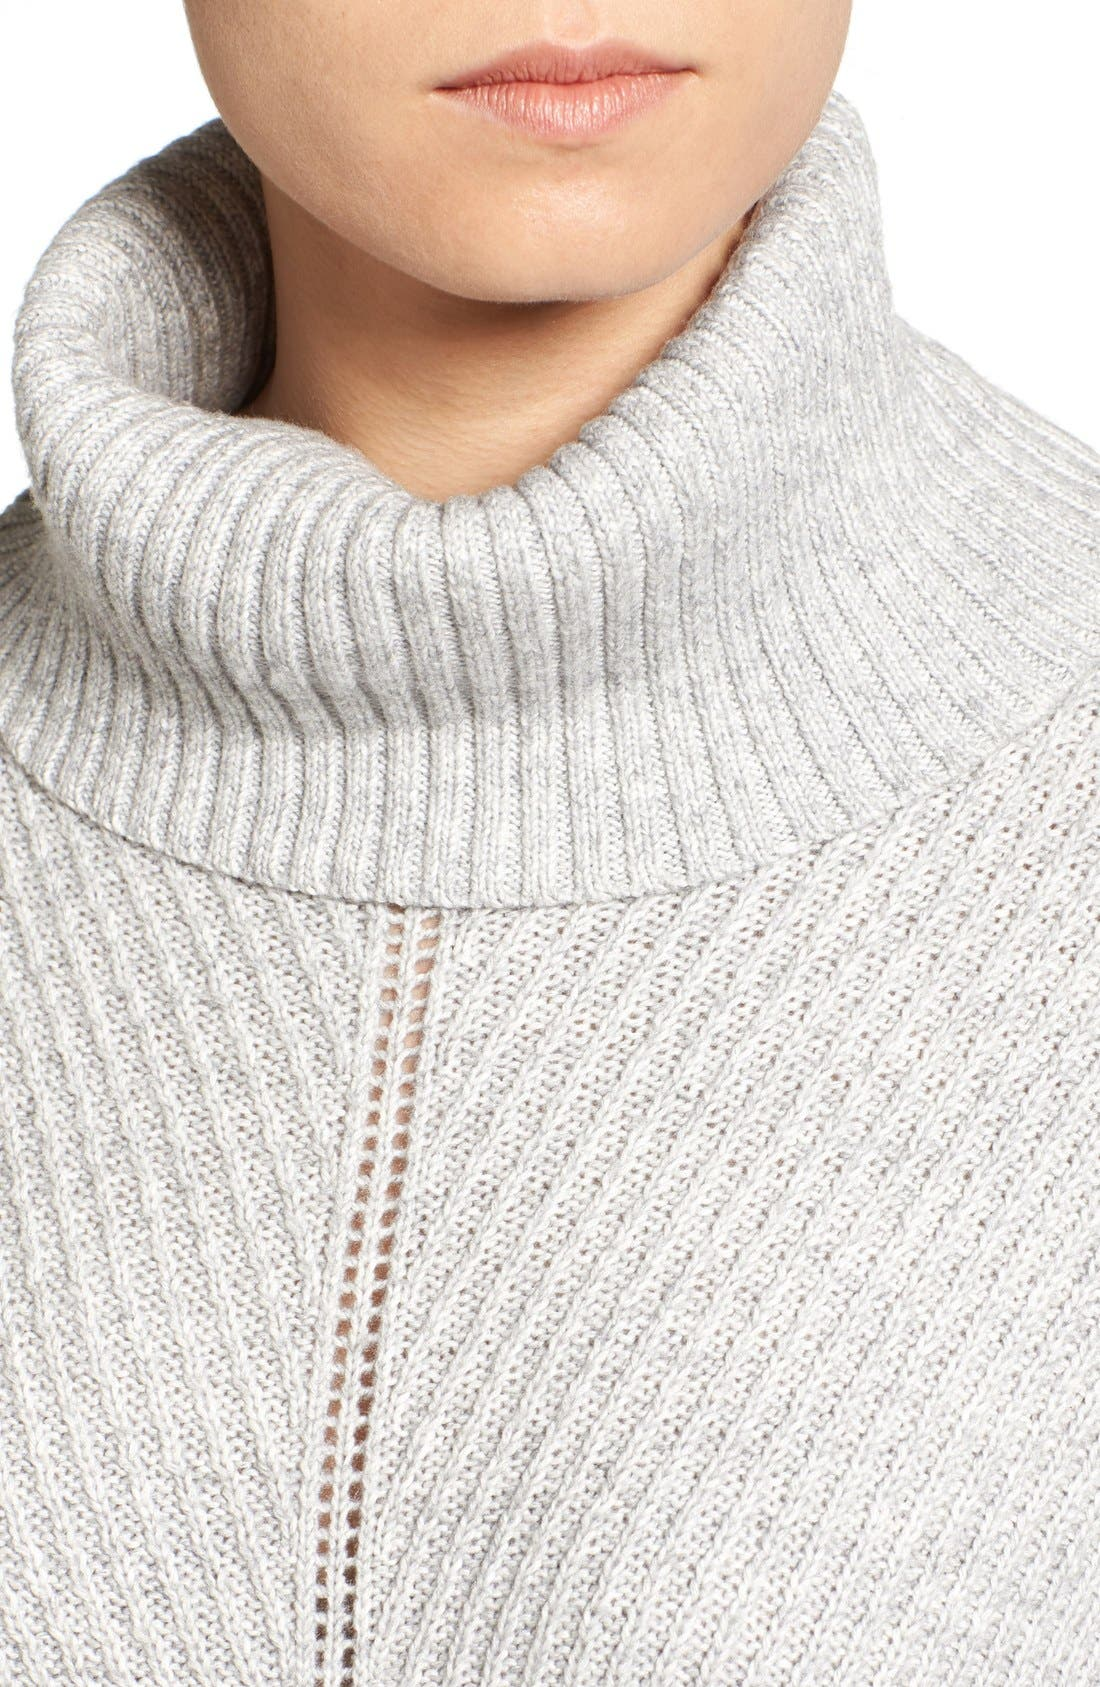 Phil Slouchy Sweater,                             Alternate thumbnail 6, color,                             057